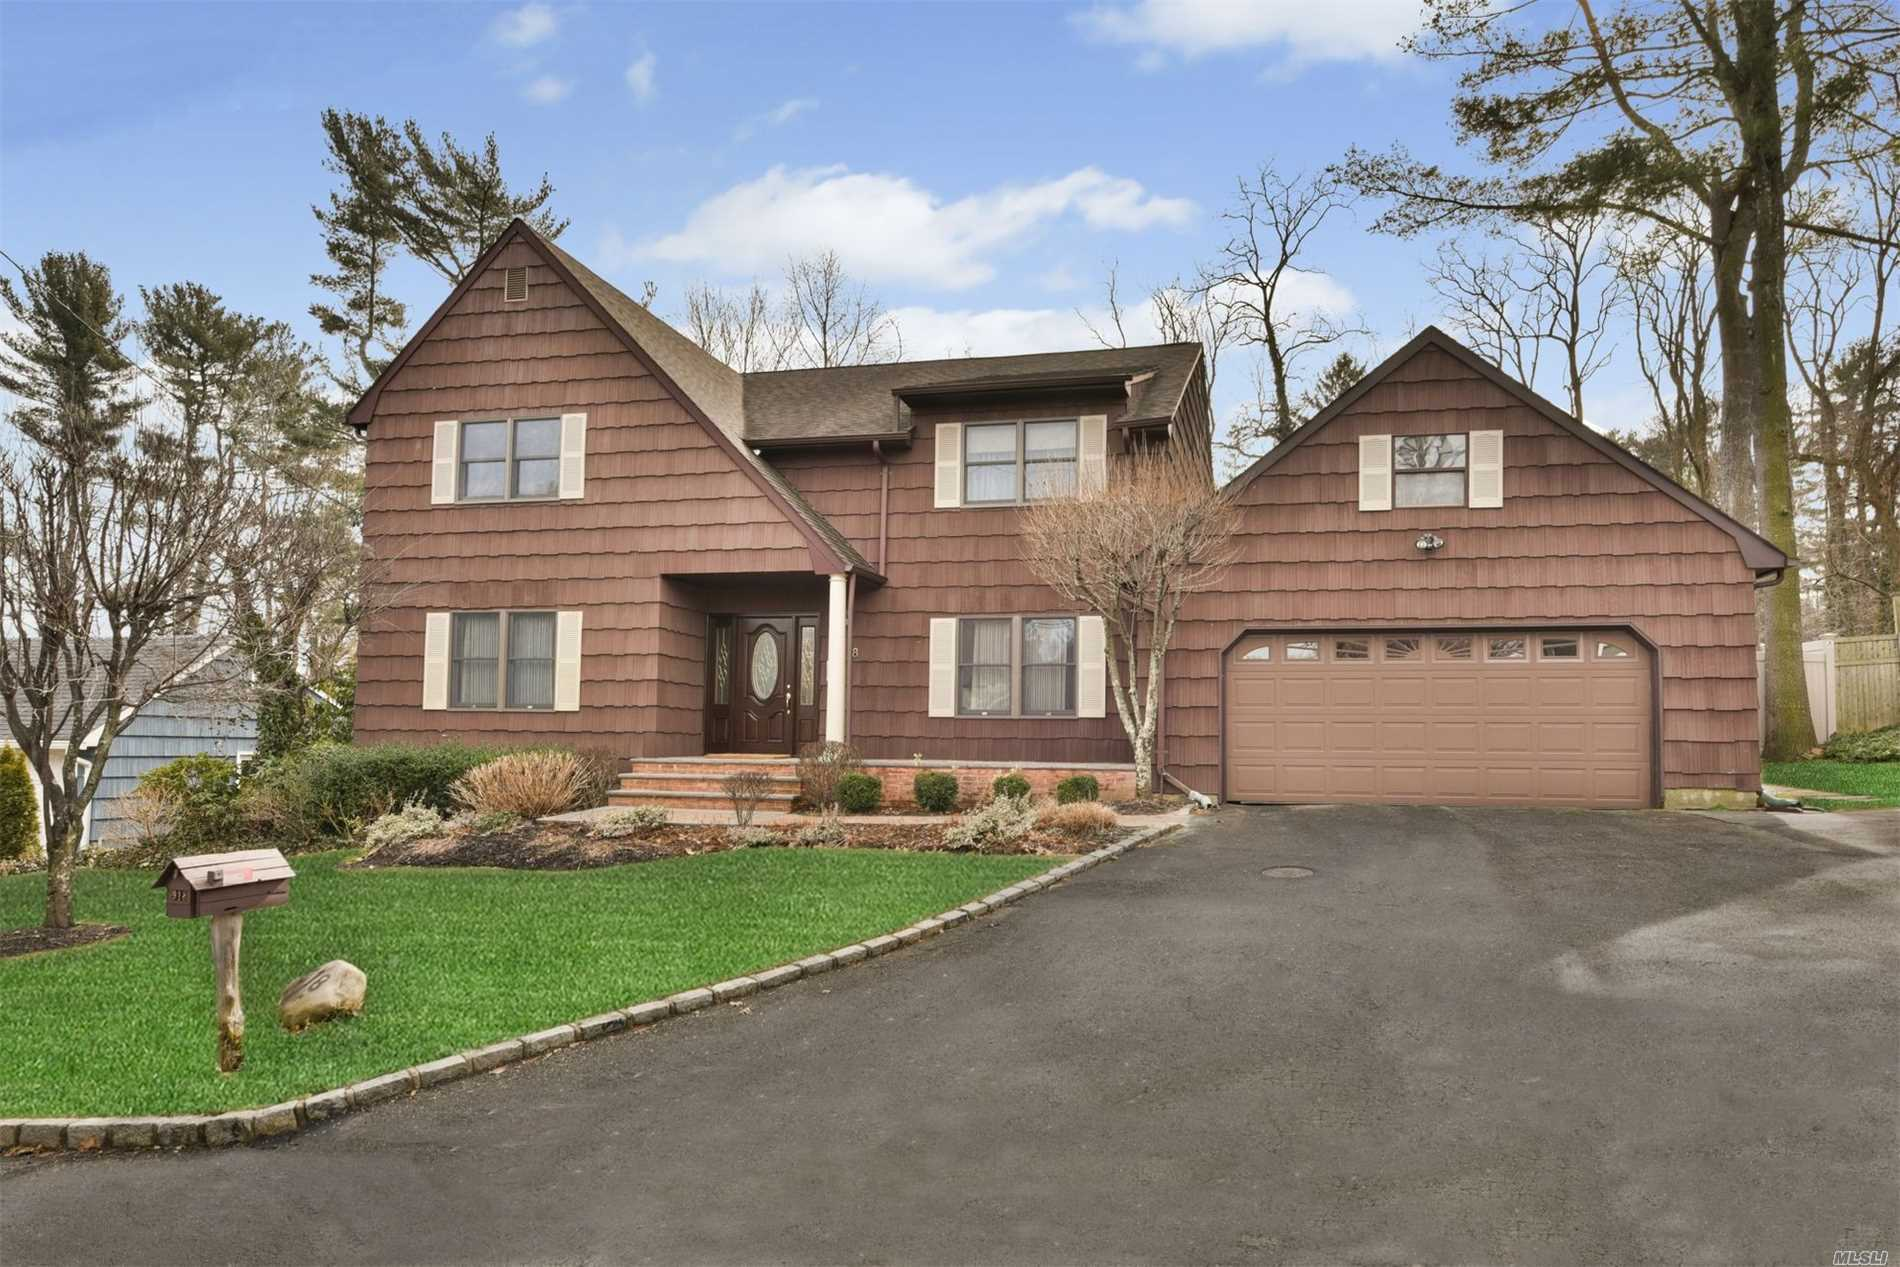 918 The Concourse Oyster Bay, NY 11771